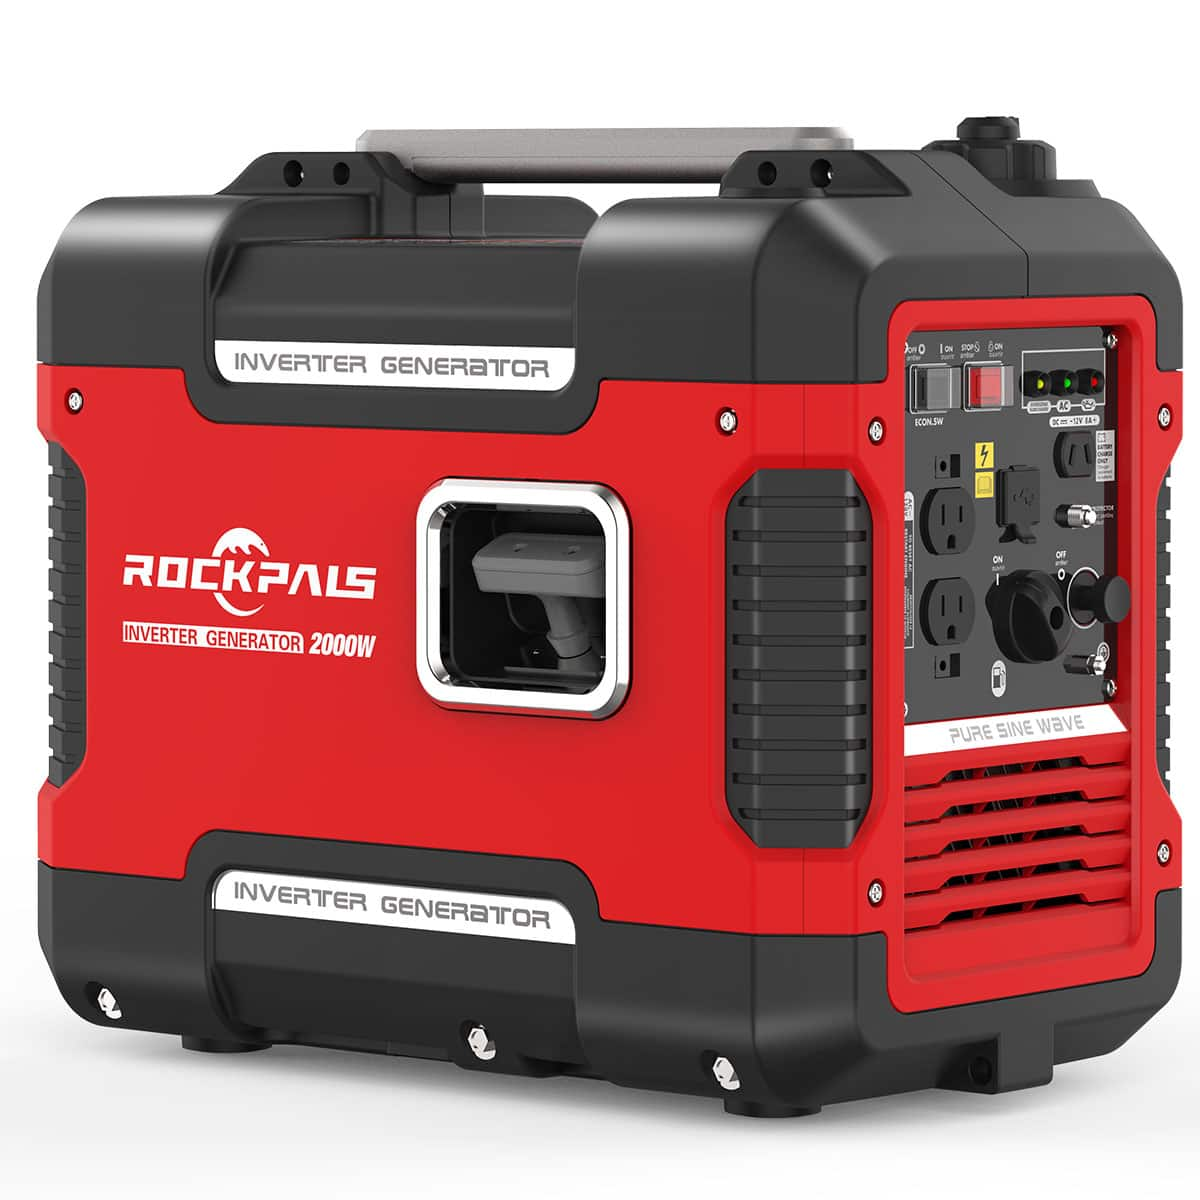 2000 Watts Portable Generator For Emergency /Home / Travel $339.99